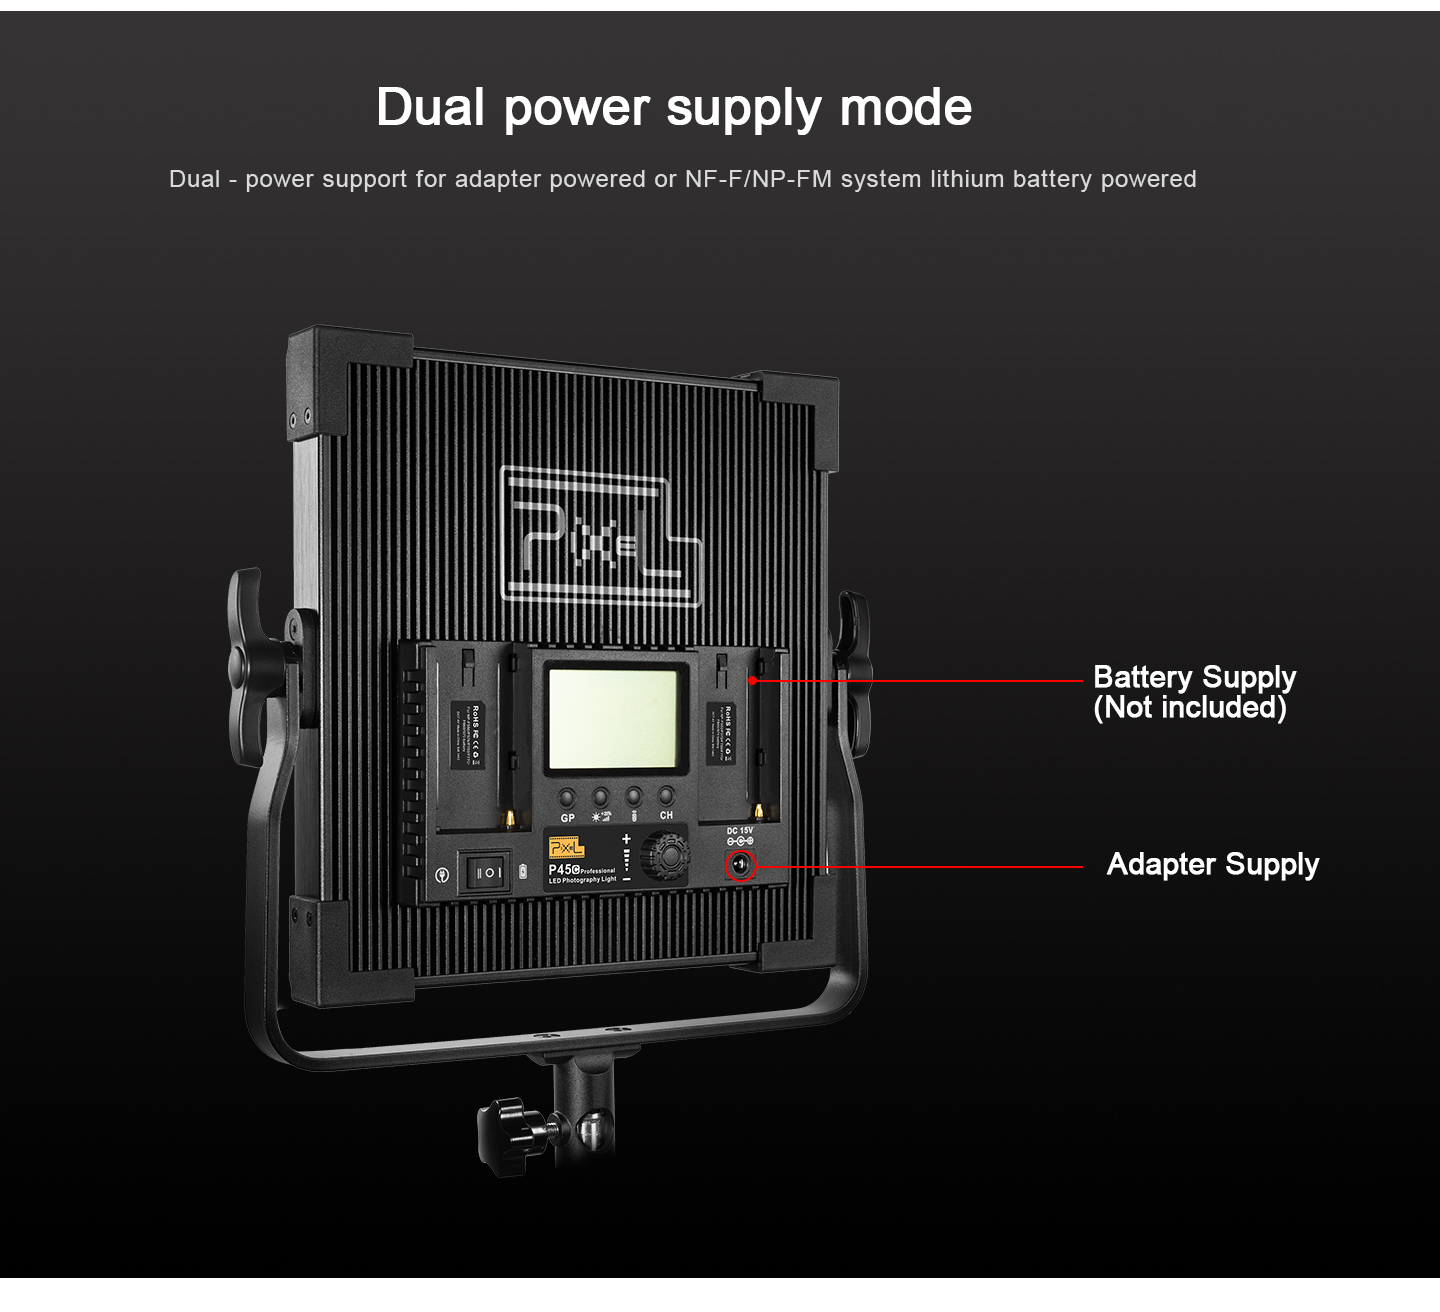 Dual power supply mode